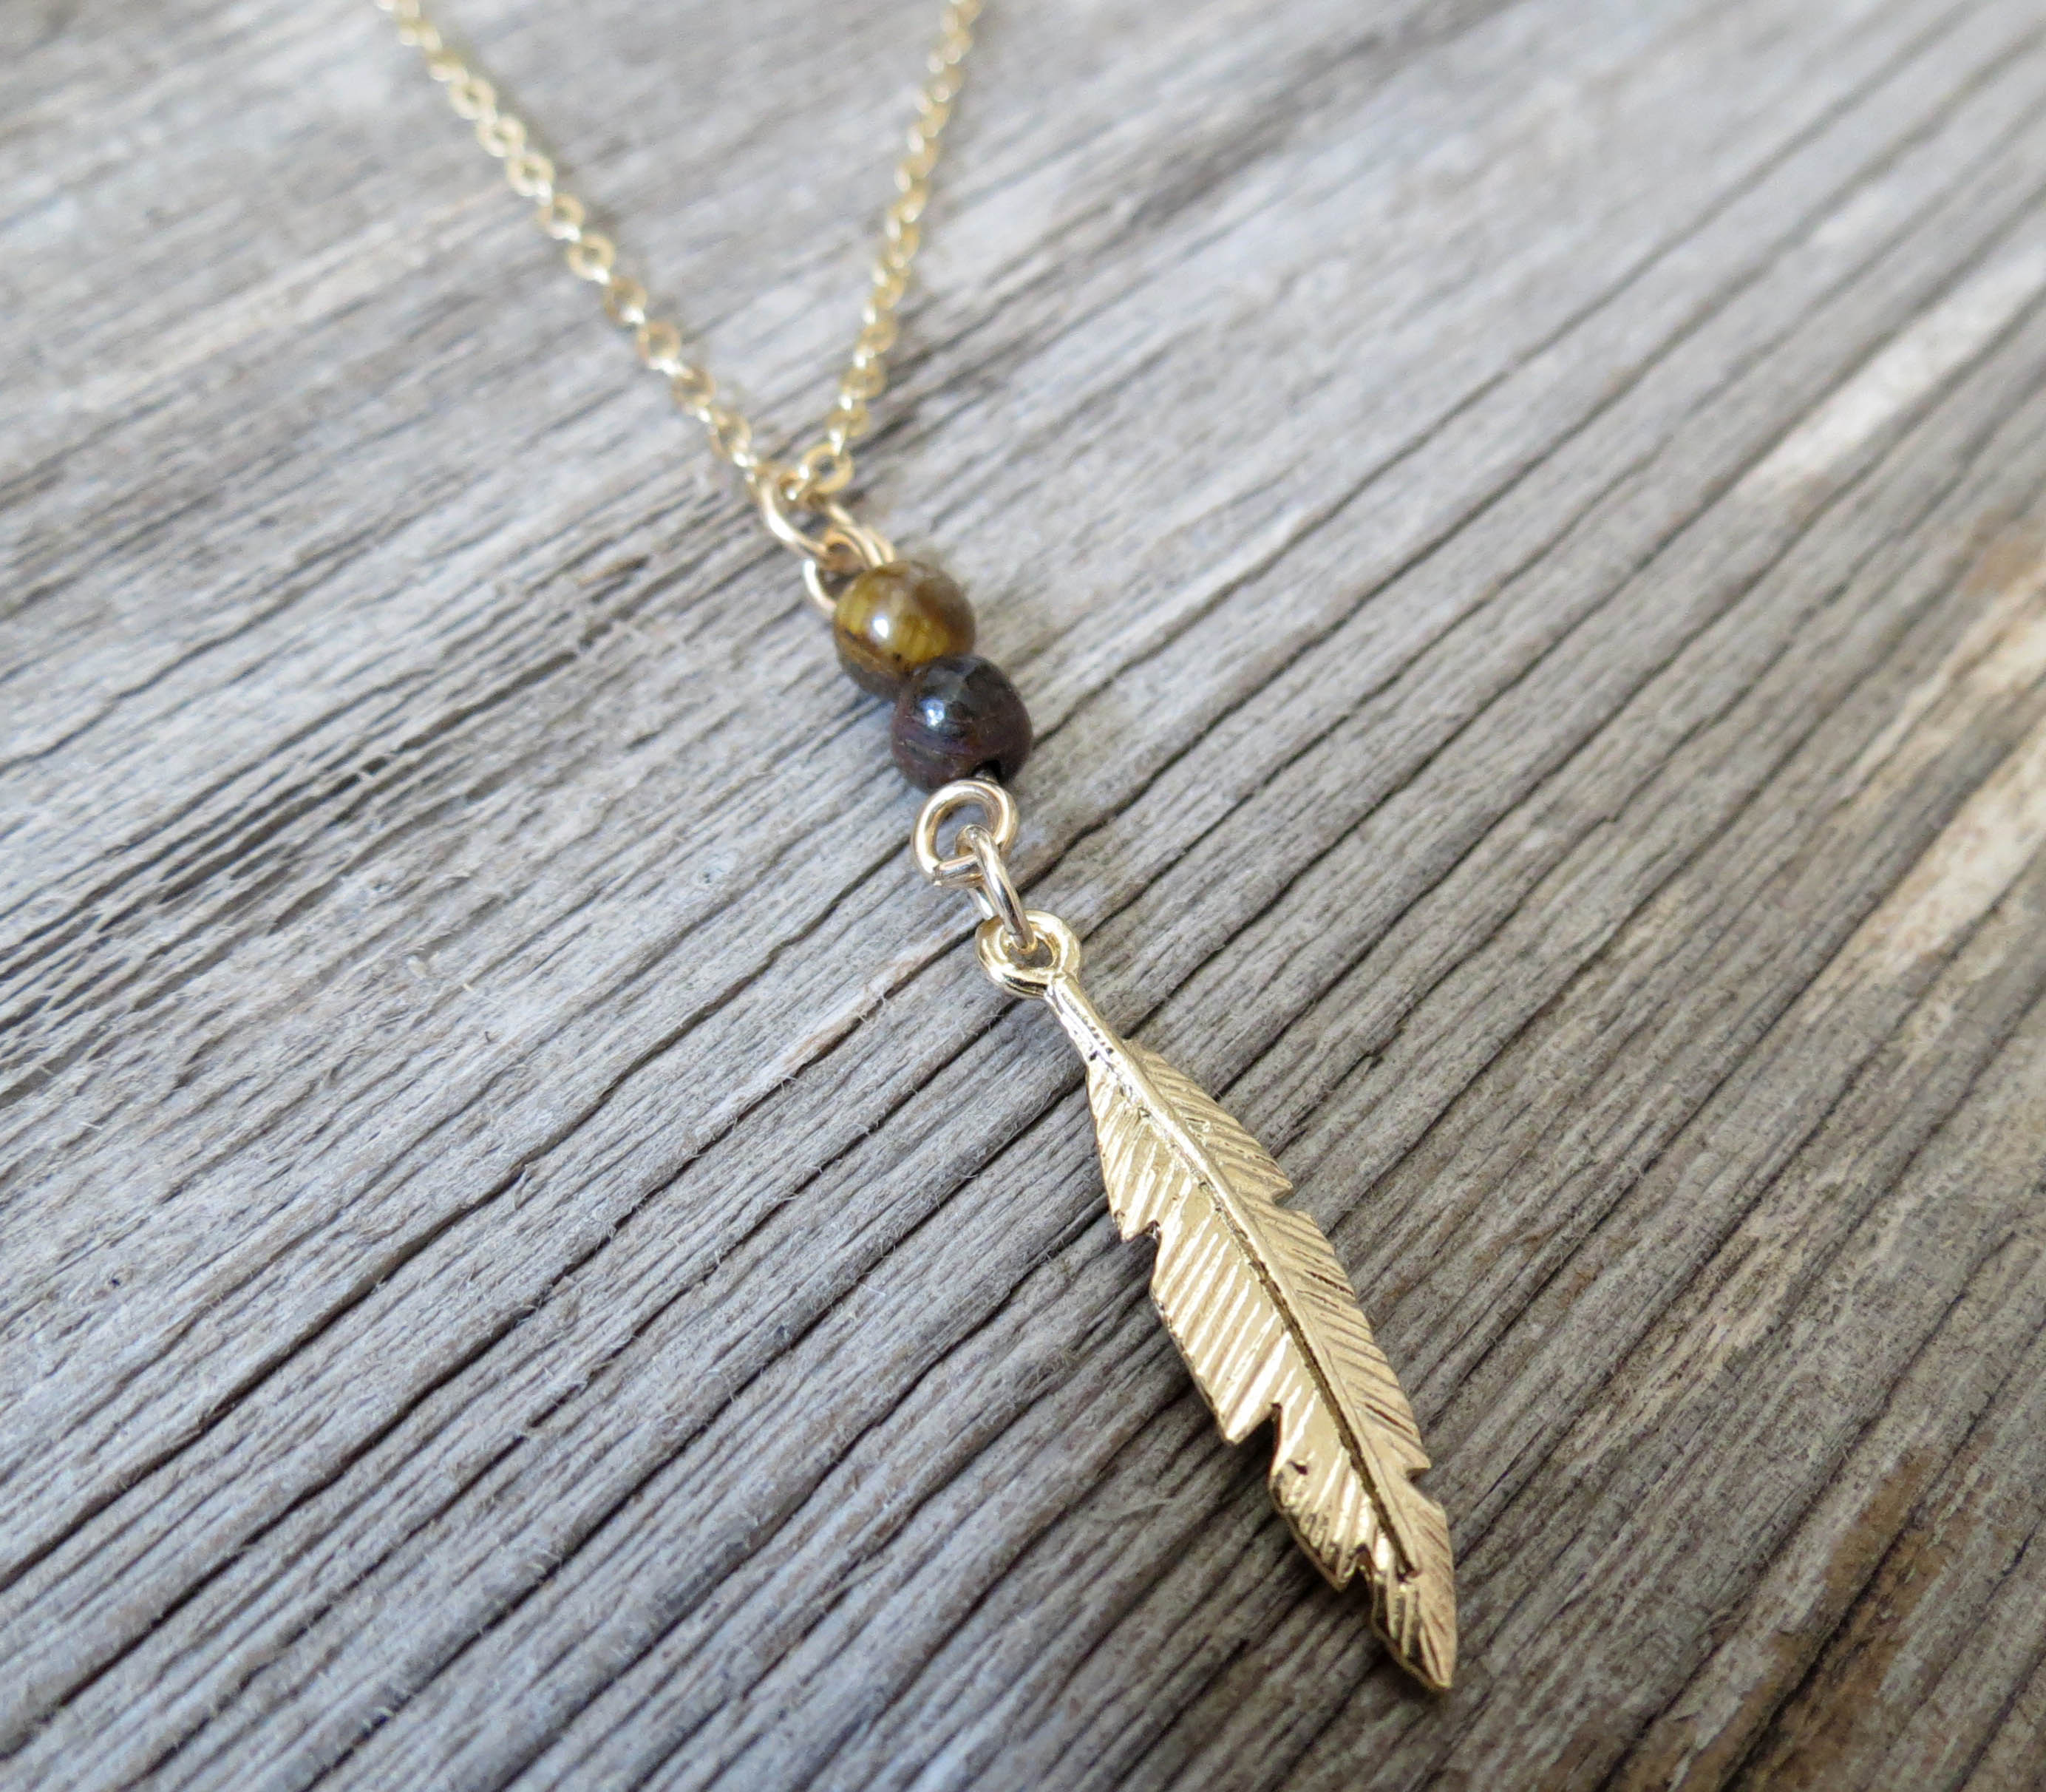 Mens necklace mens feather necklace mens gold necklace mens mens necklace mens feather necklace mens gold necklace mens jewelry necklaces for men jewelry for men gift for him aloadofball Images